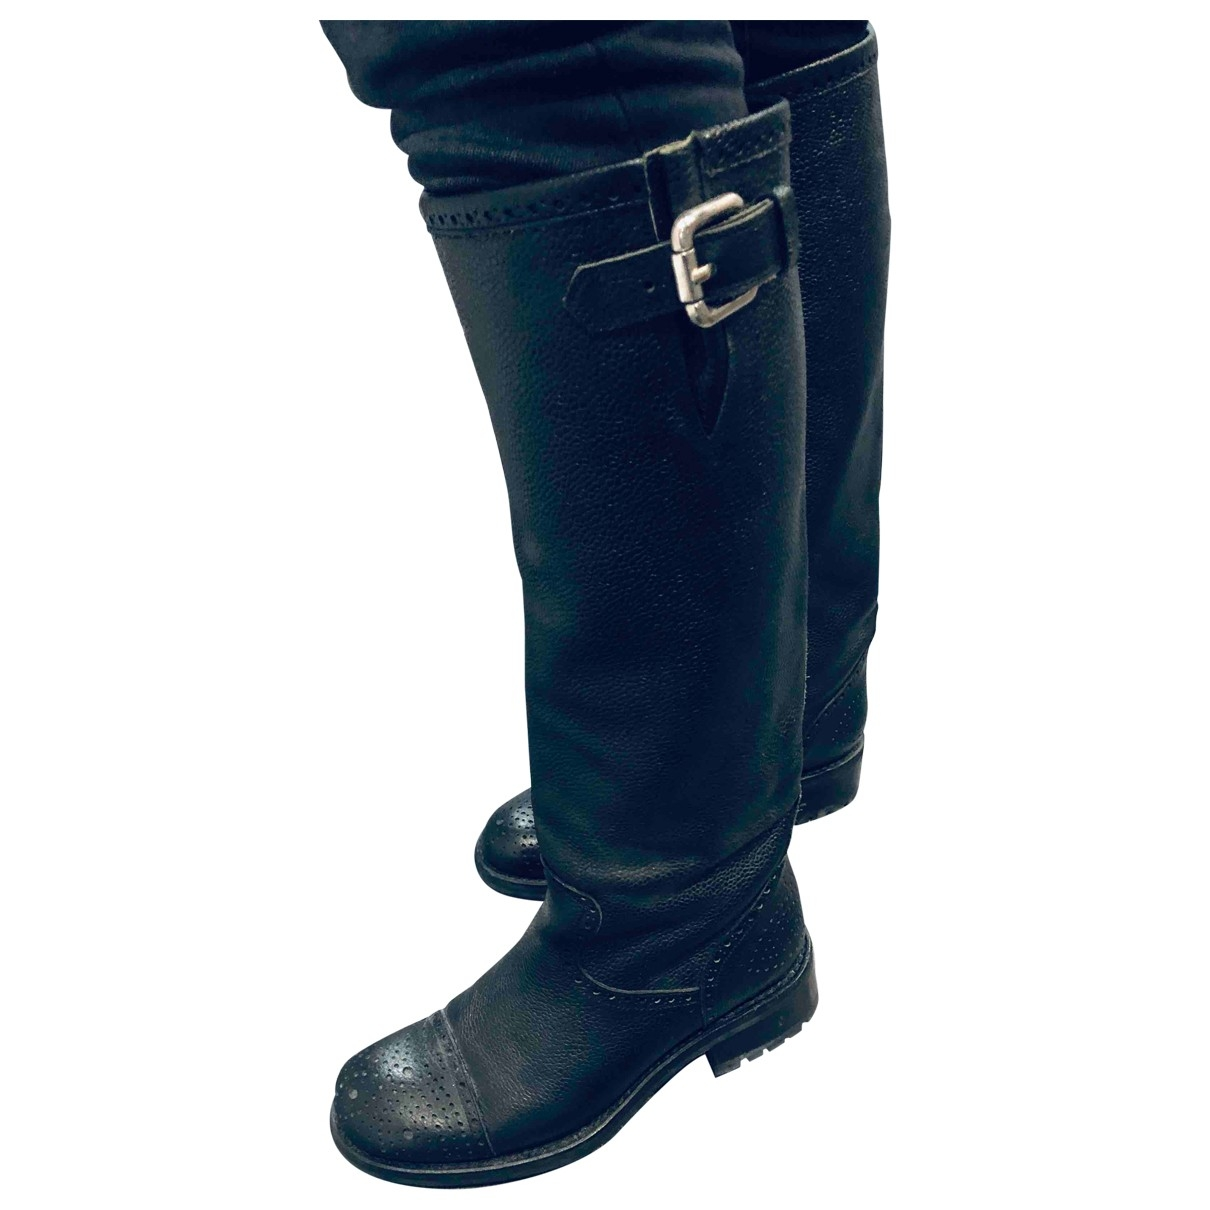 Free Lance Geronimo Black Leather Boots for Women 38 EU